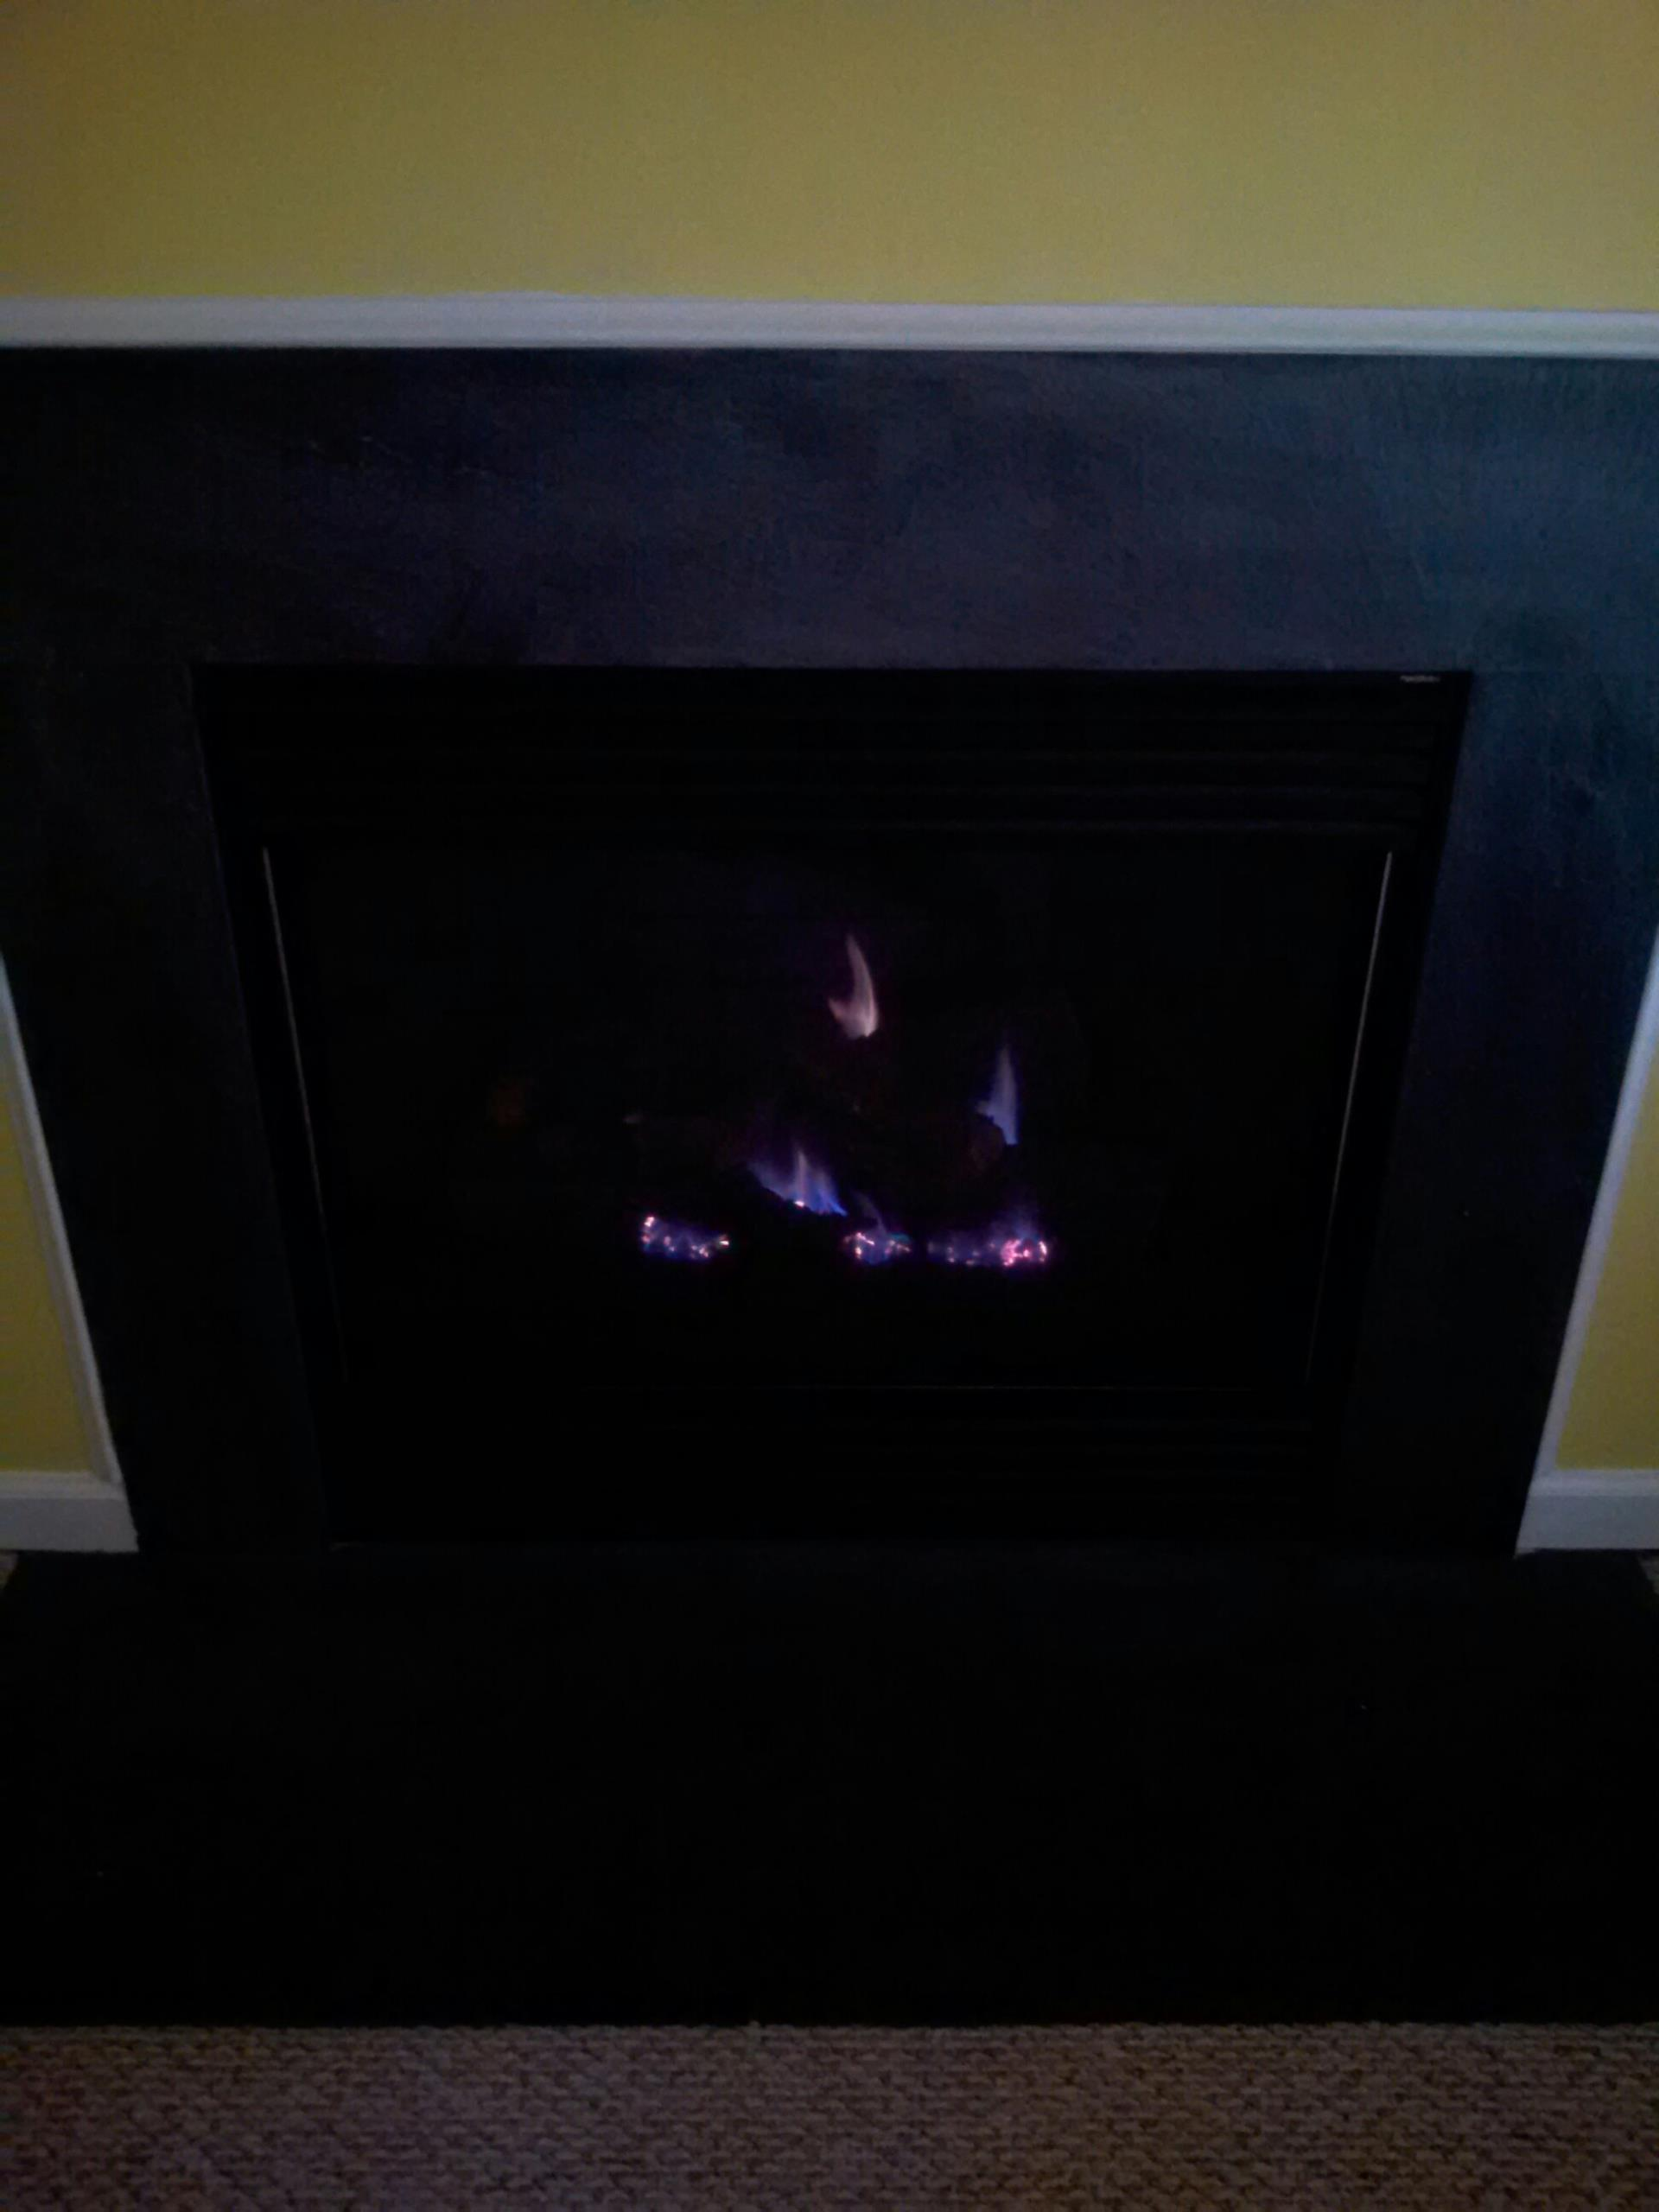 Crofton, MD - Crofton Maryland gas fireplace insert & gas logs installation repair service call.